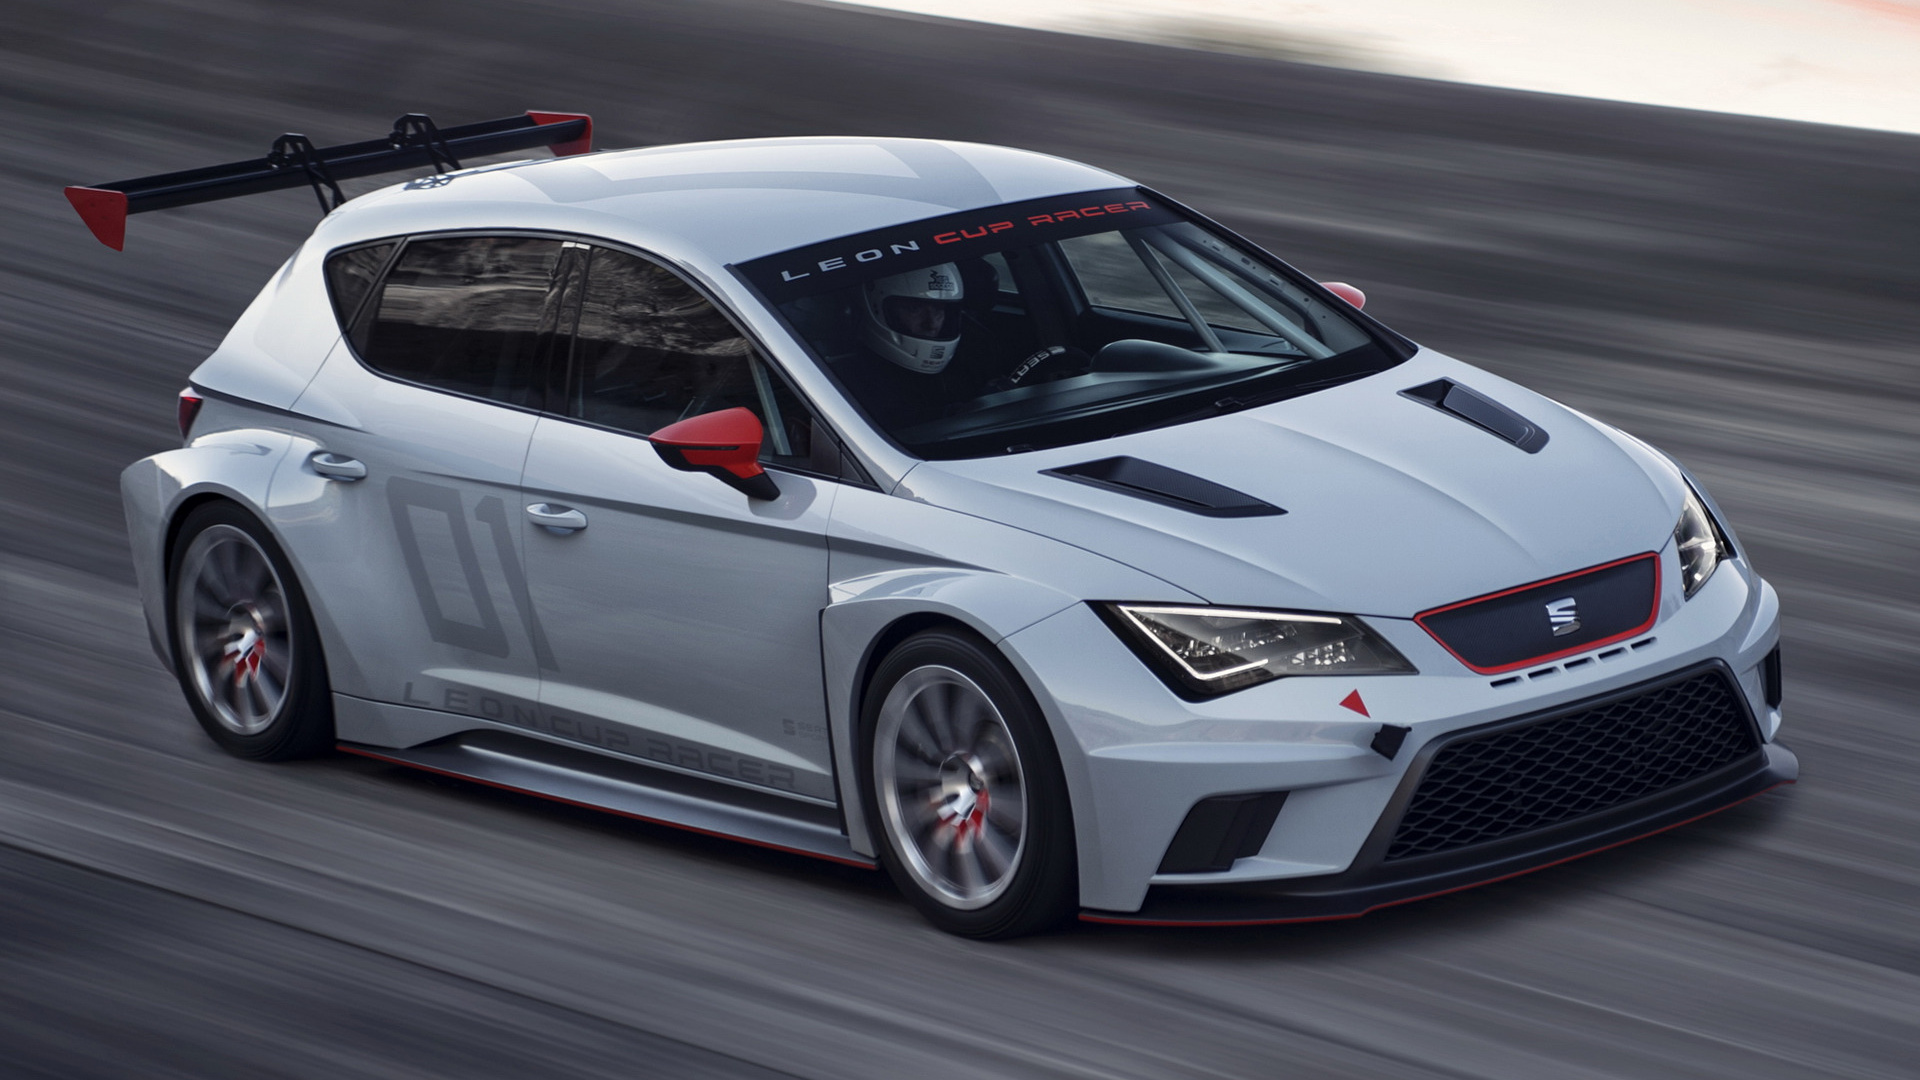 2013 Seat Leon Cup Racer Wallpapers And Hd Images Car Pixel